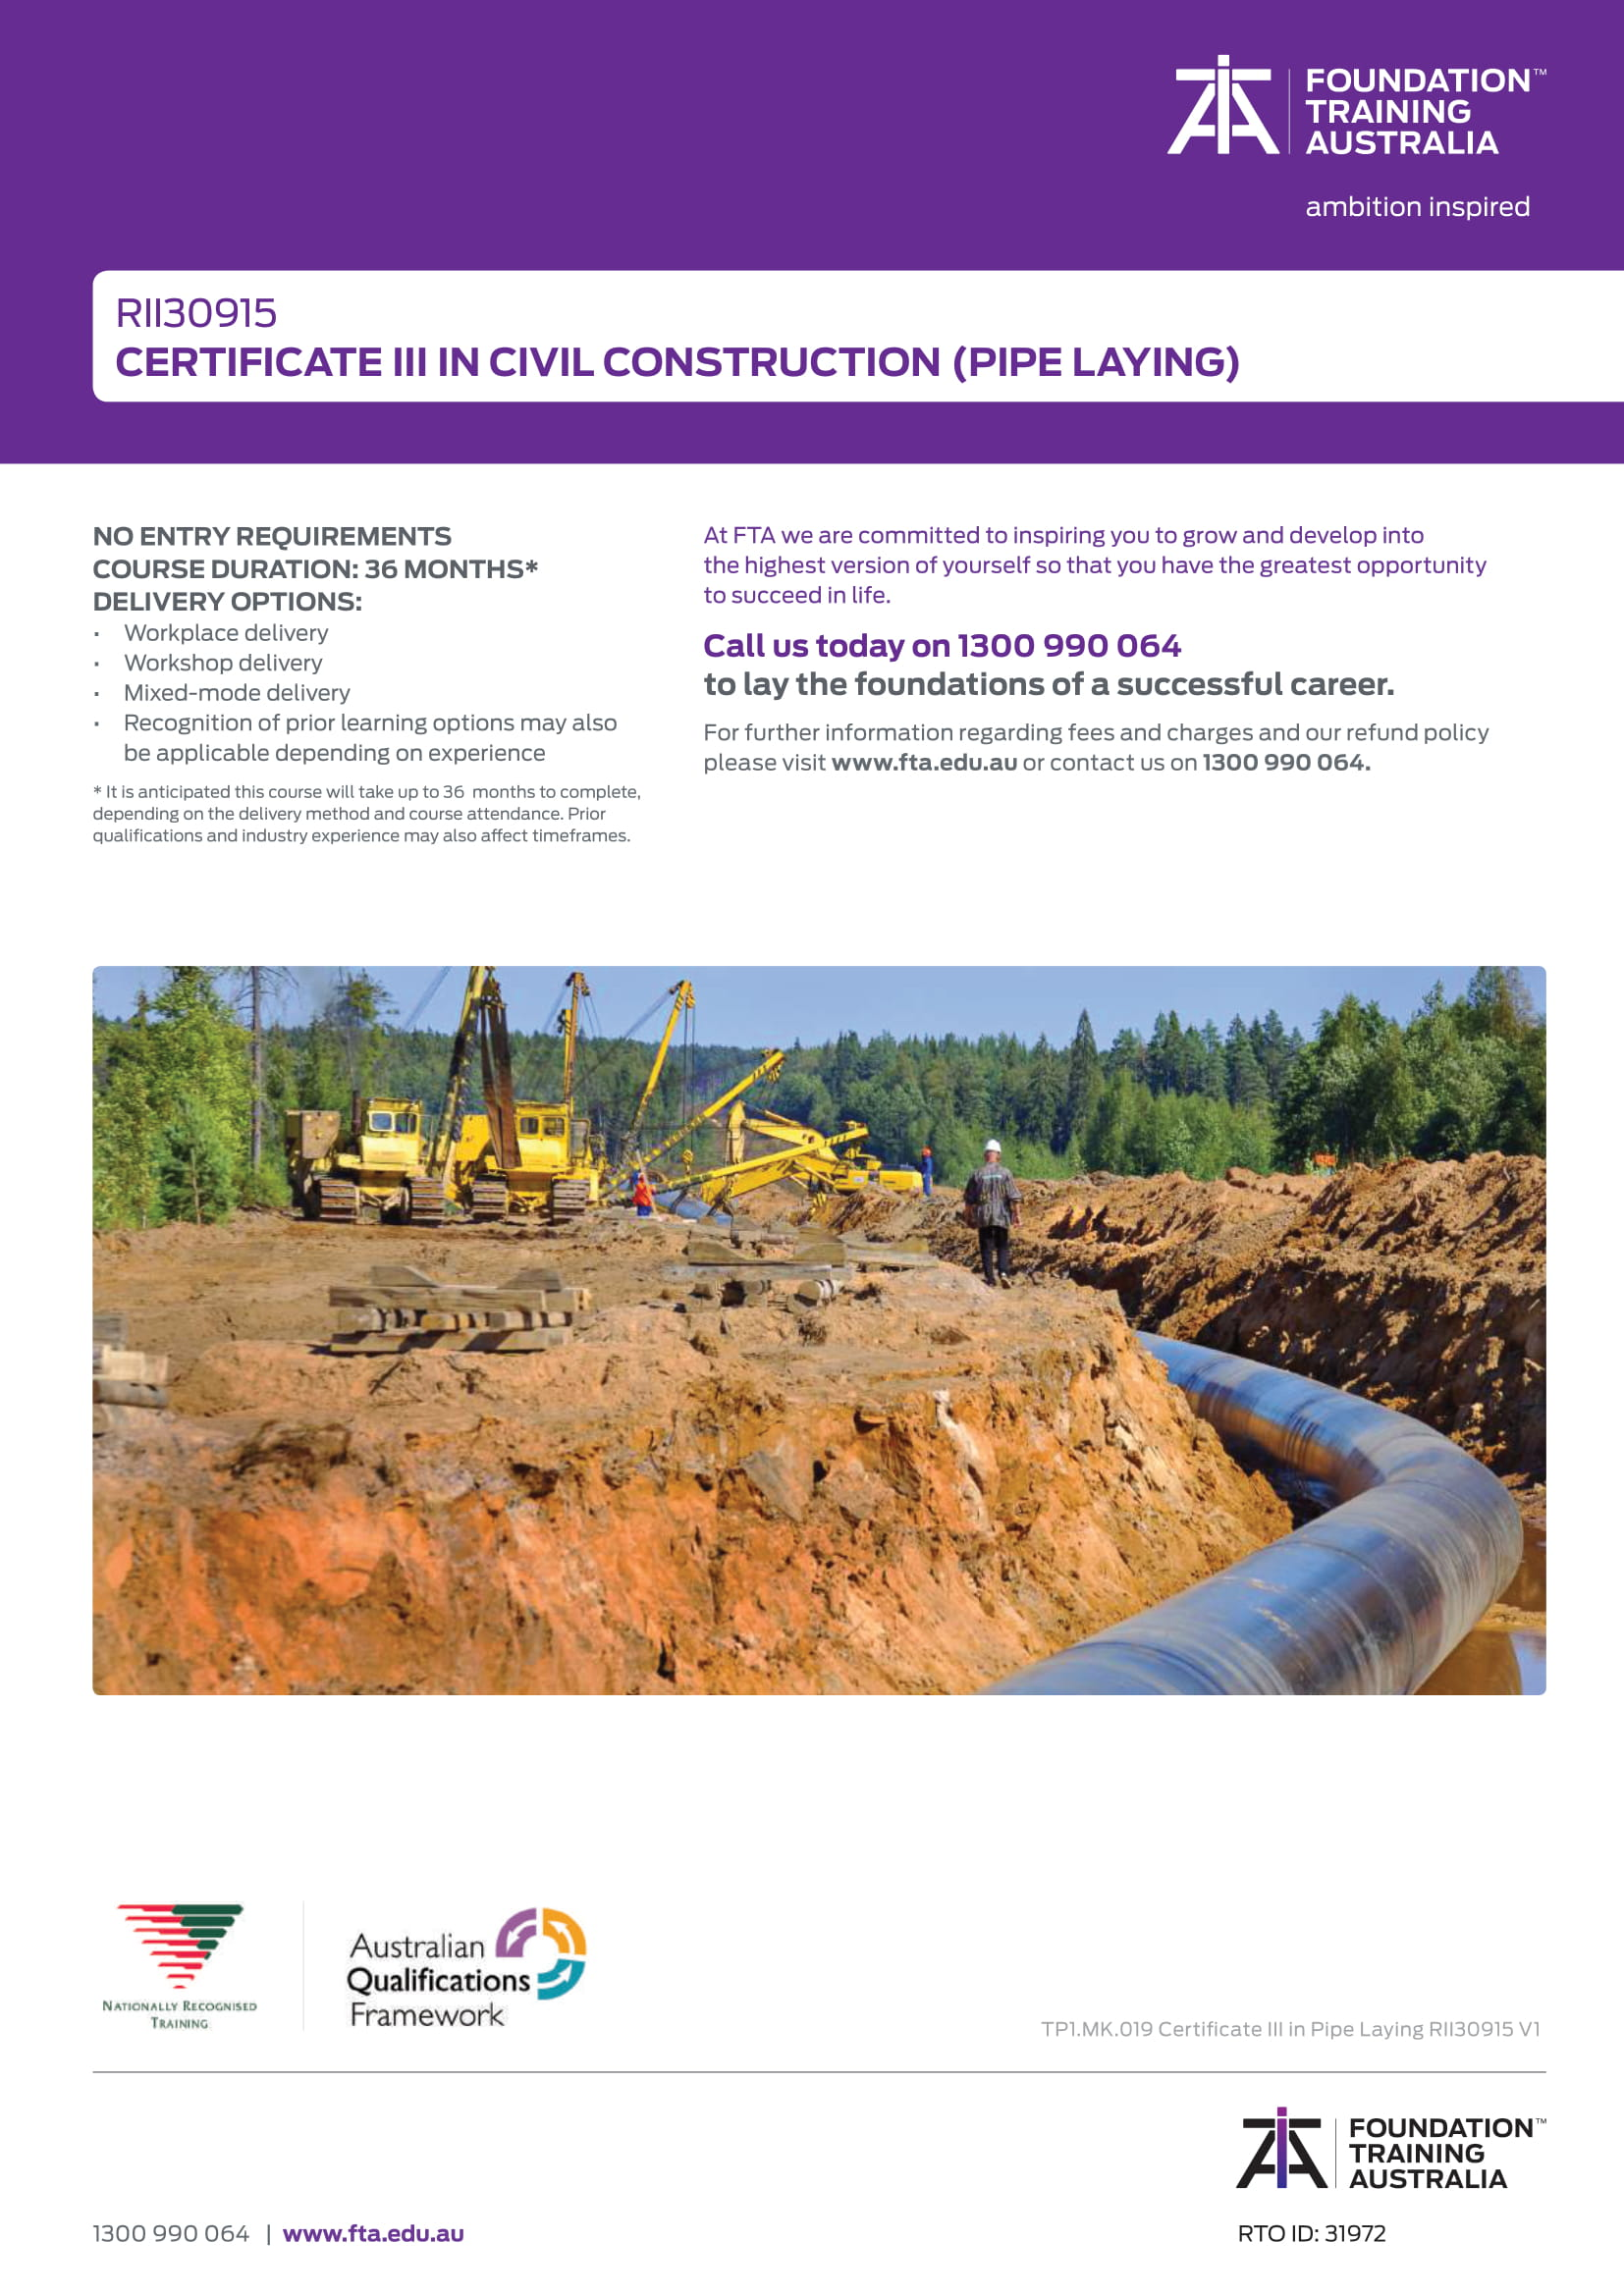 https://www.fta.edu.au/wp-content/uploads/2020/06/TP1.MK_.019-Certificate-III-in-Civil-Construction-Pipe-Laying-RII30915-V1-DIGITAL.compressed-2.jpg